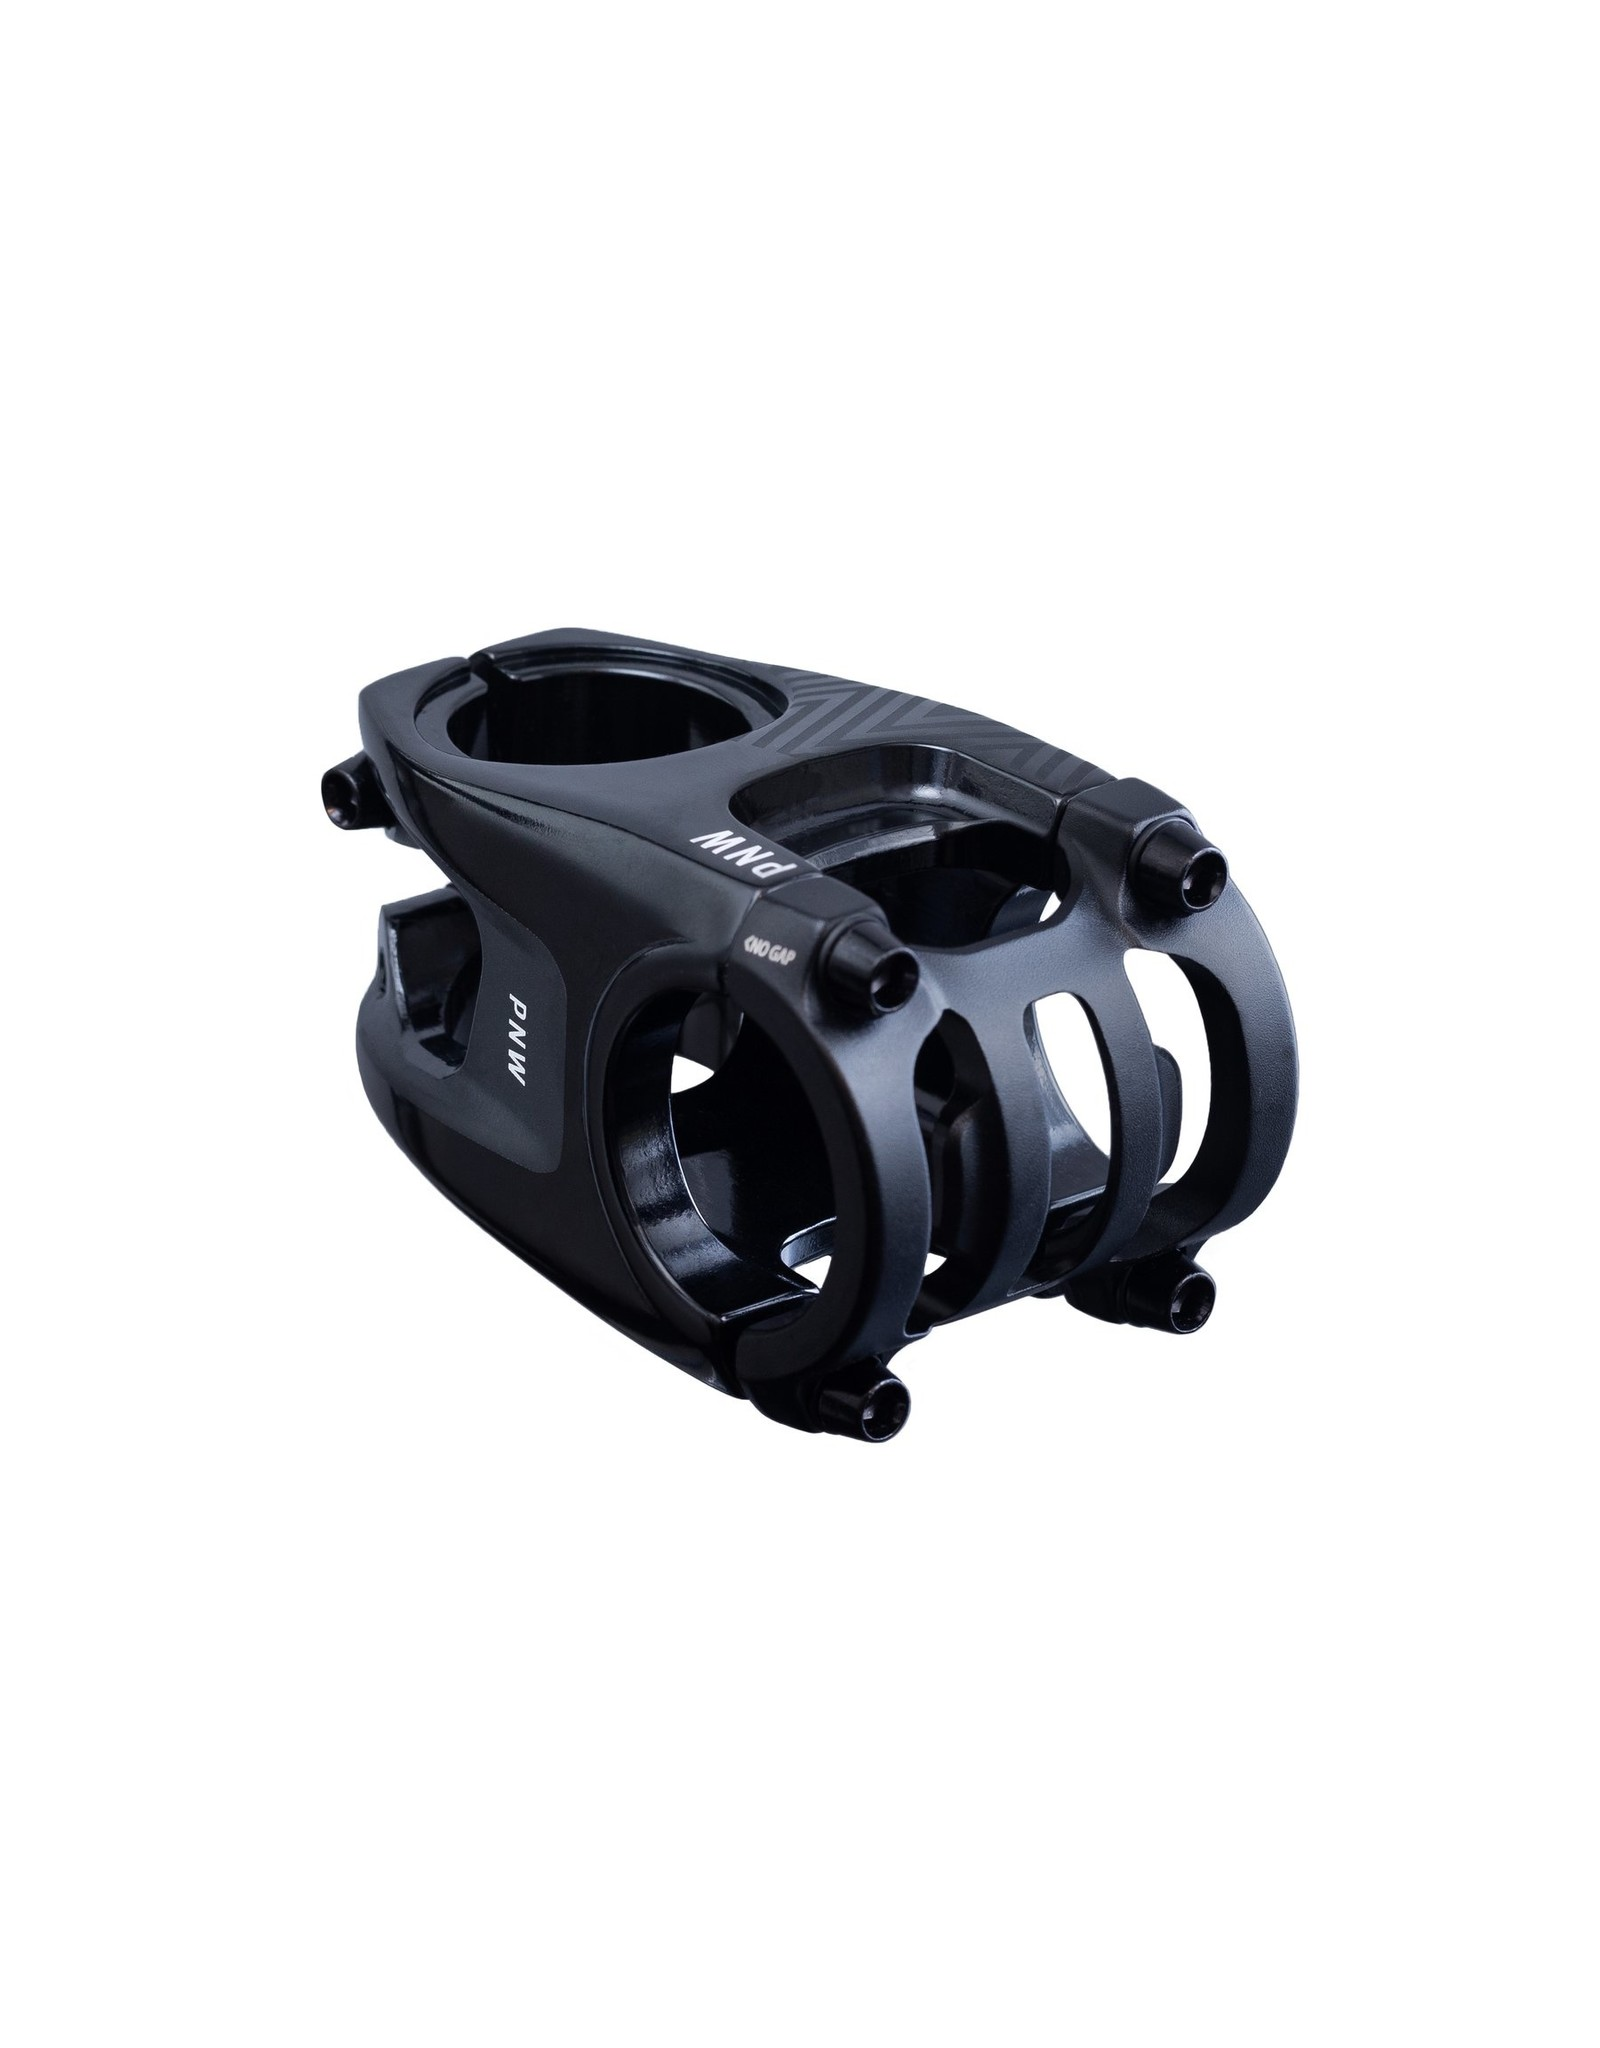 PNW Components THE RANGE STEM WITH GOPRO OR HEADLIGHT MOUNT 40mm